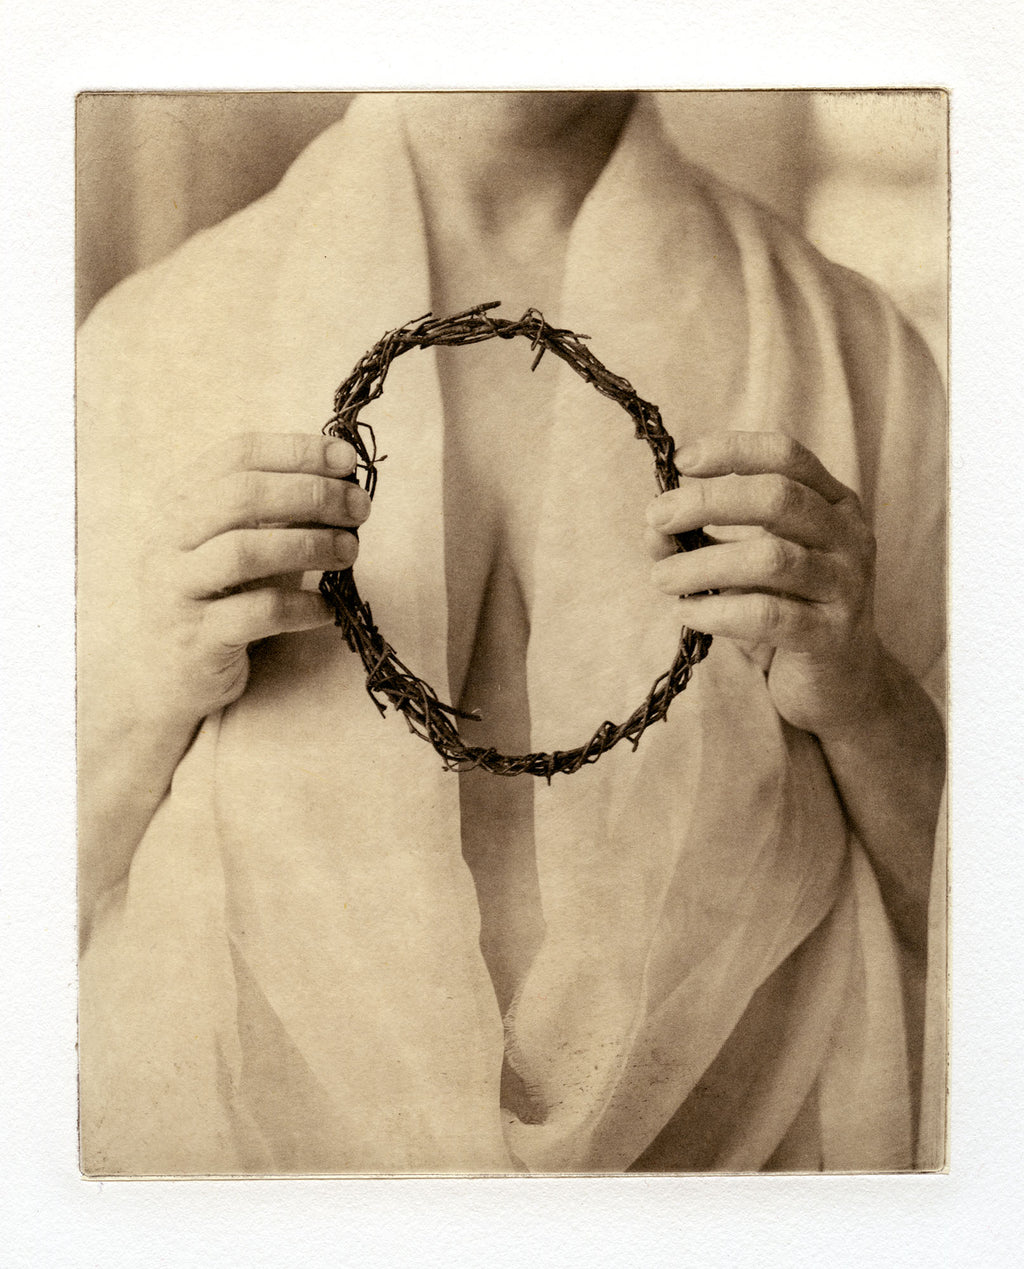 The circle  - Polymer photogravure print - Edition 2021